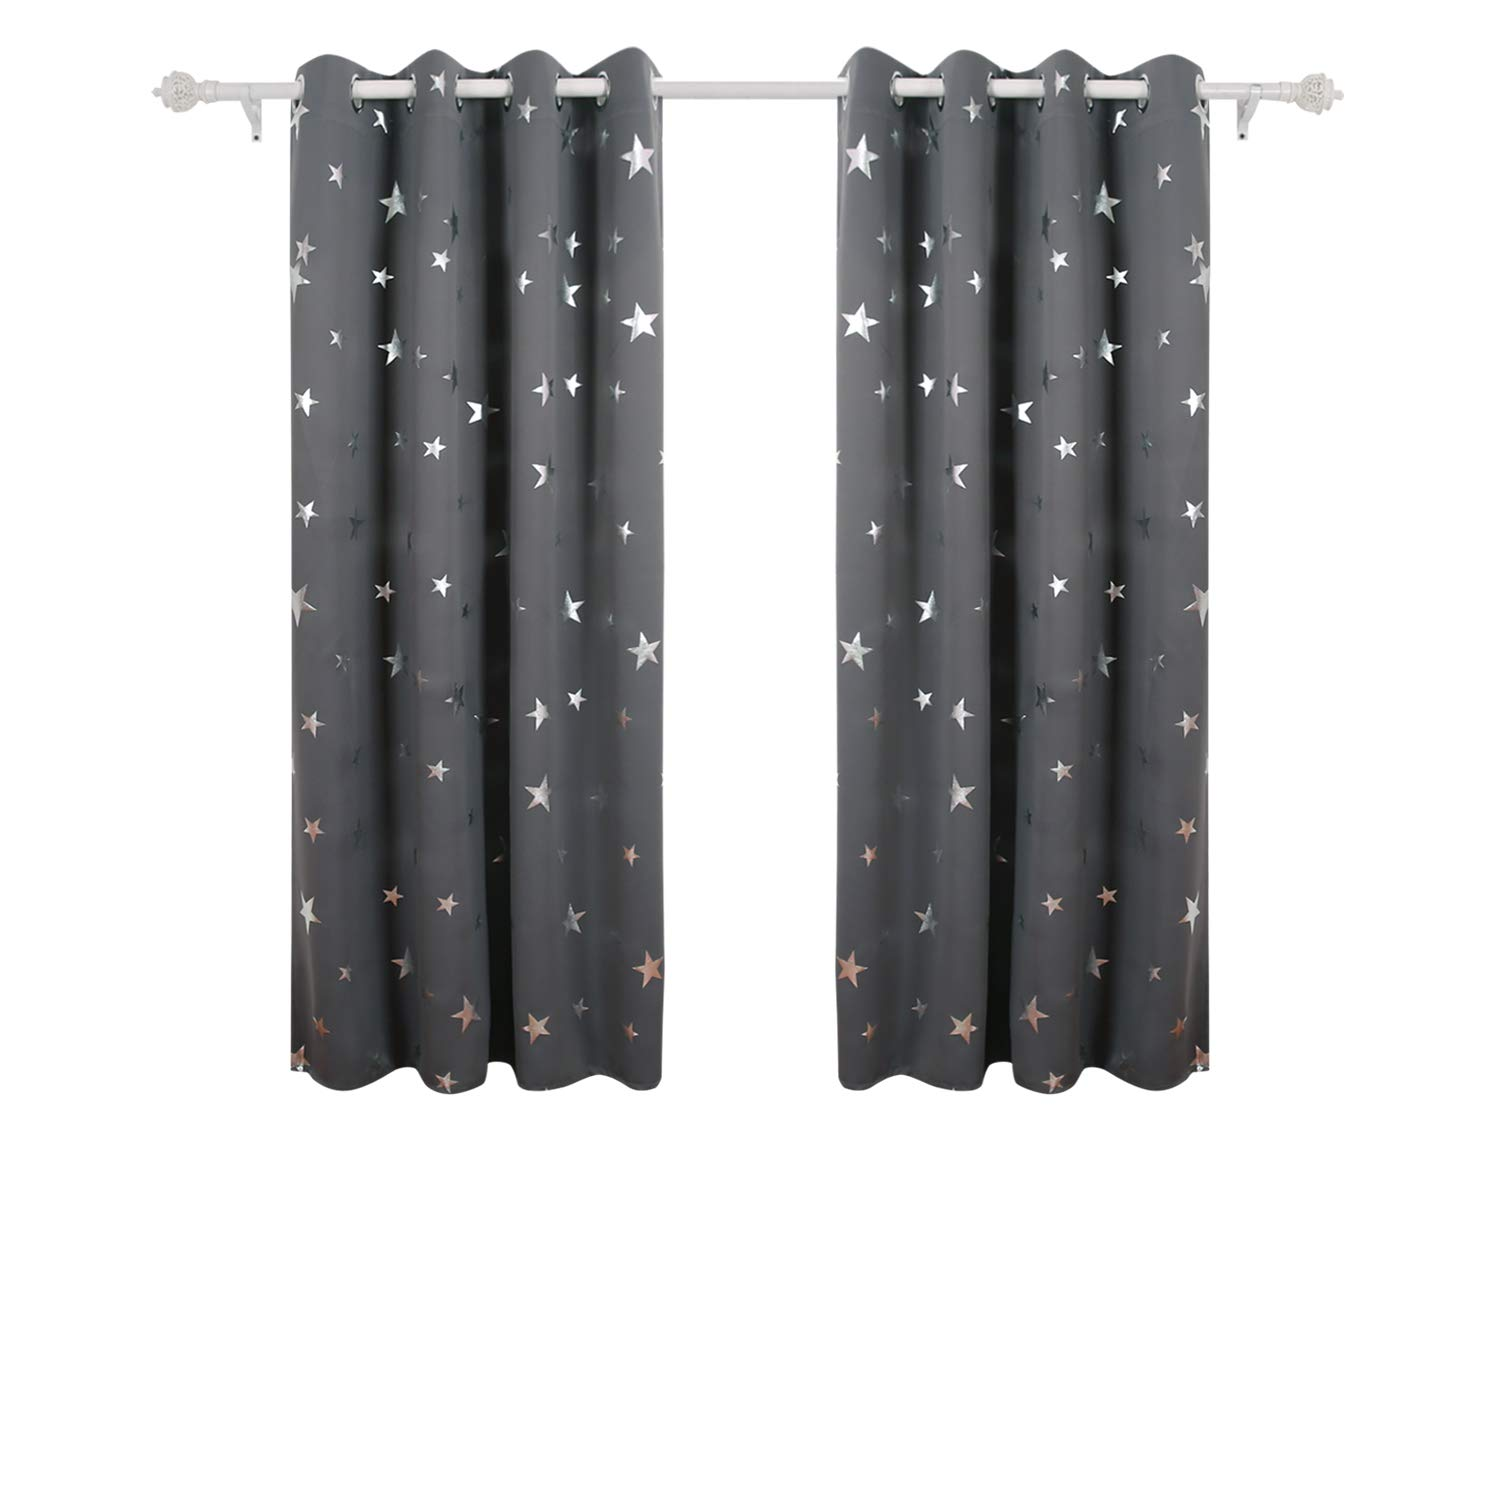 Deconovo Stars Foil Printed Thermal Insulated Curtains Eyelet Blackout Curtains for Kids Bedroom 46 x 54 Inch Blue One Pair